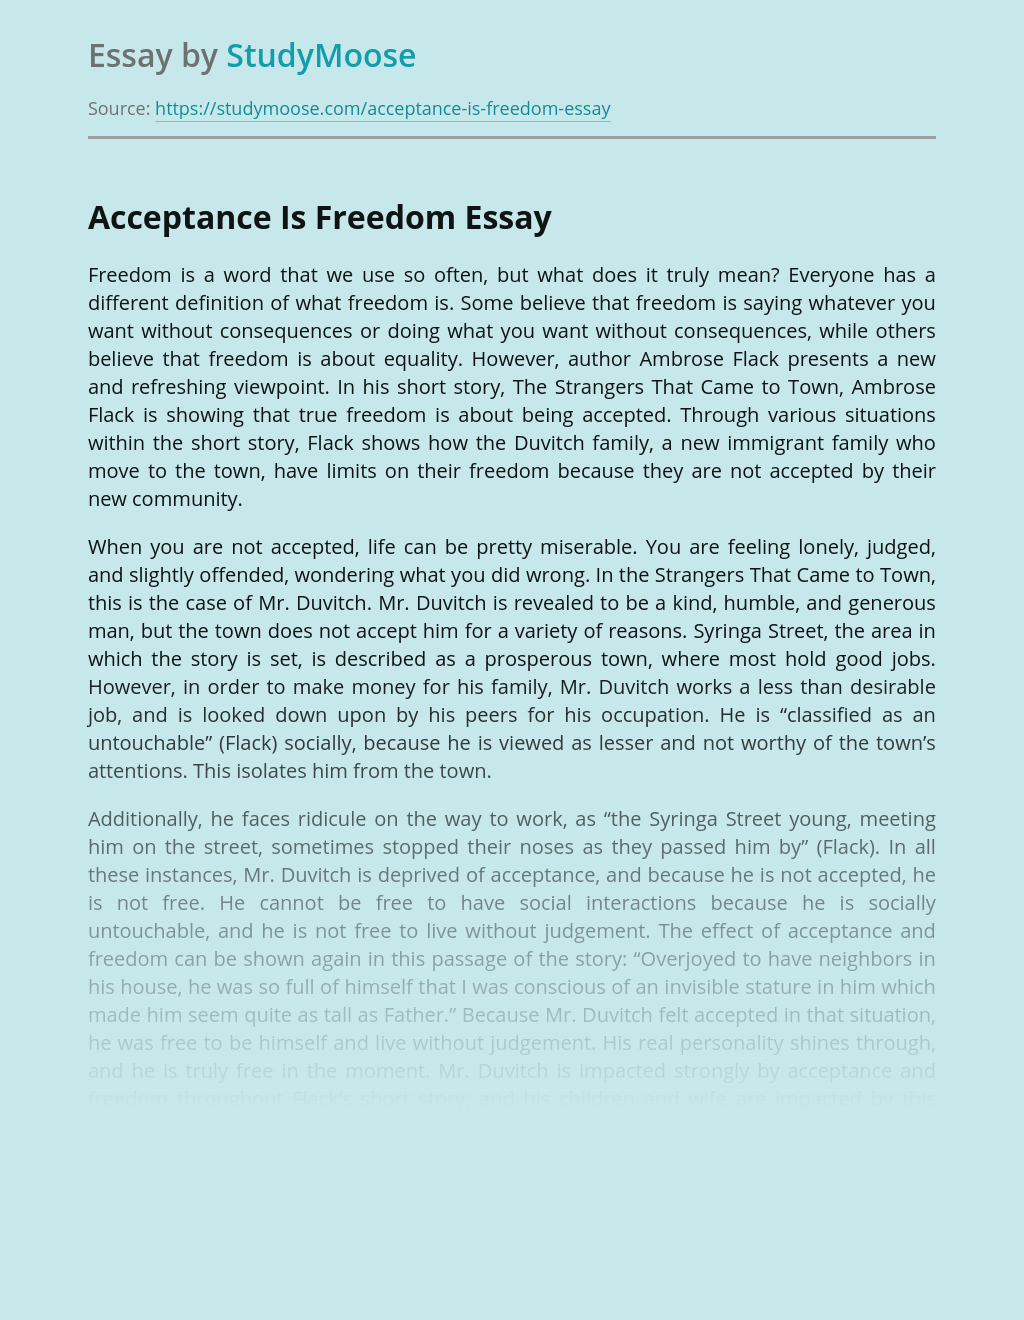 Acceptance Is Freedom